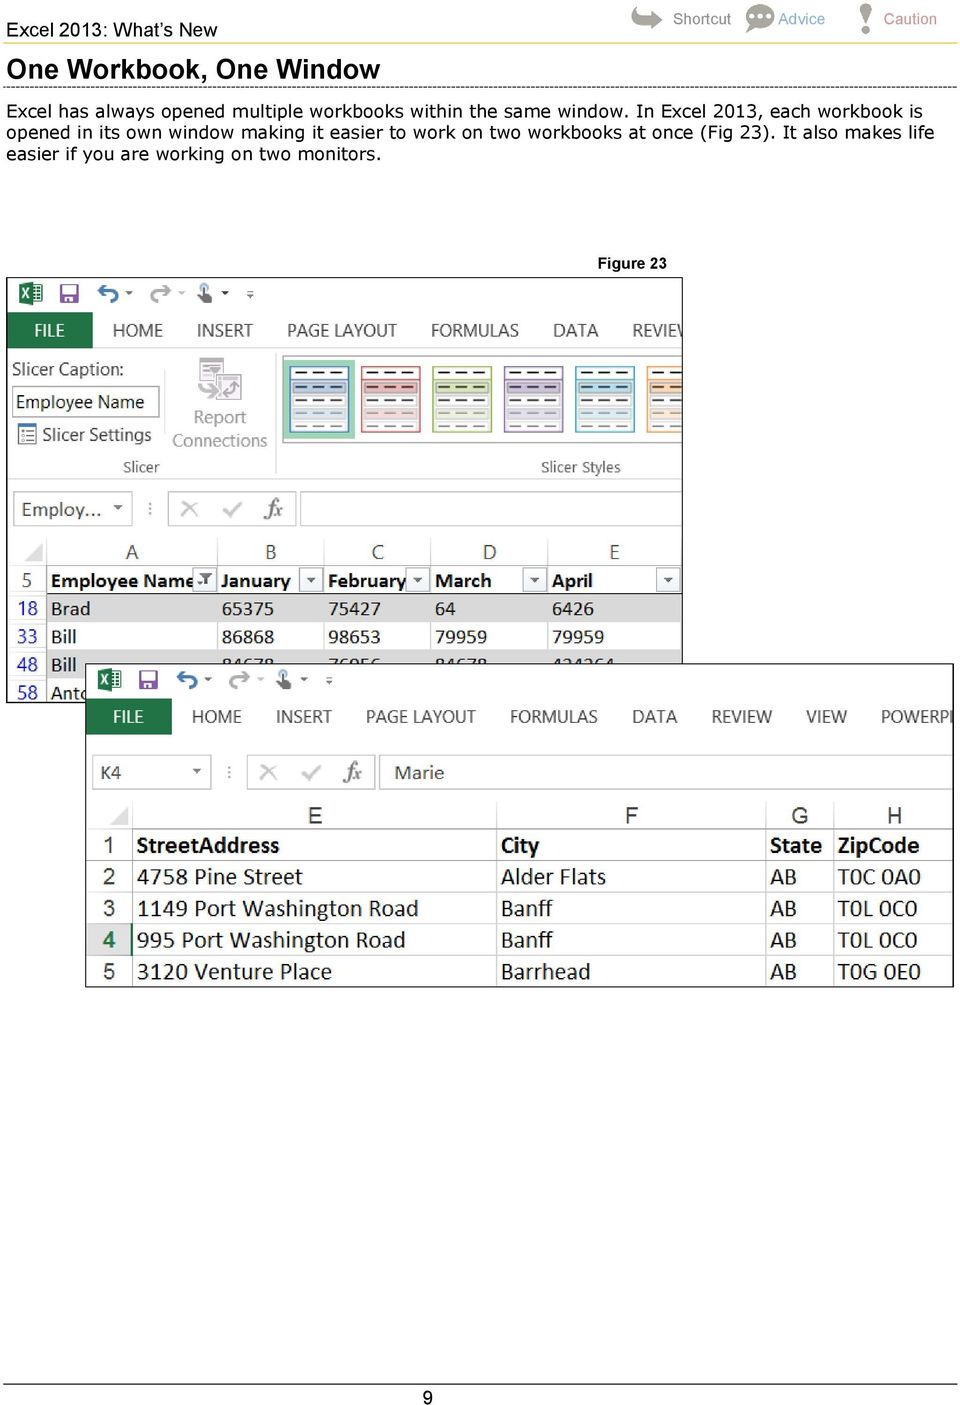 In Excel 03, each workbook is opened in its own window making it easier to